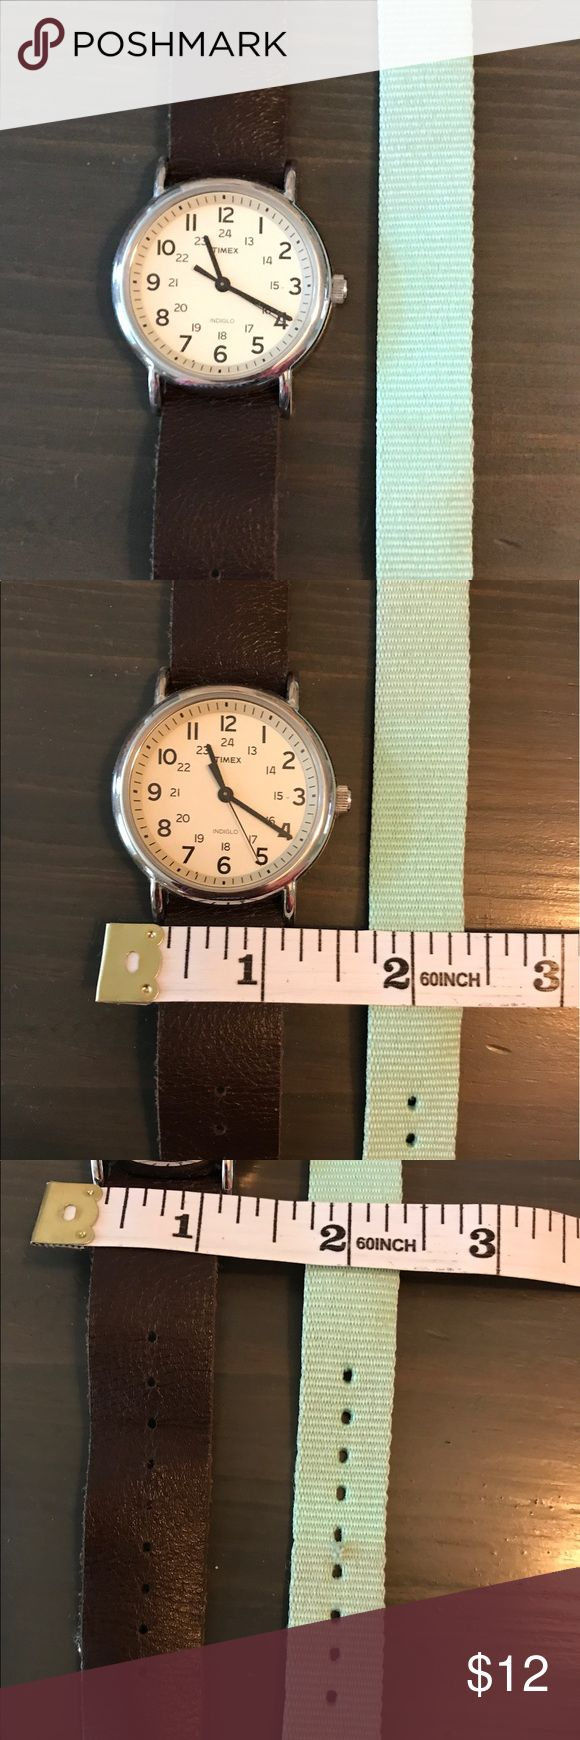 Authentic Timex Watch W/ Interchangeable Band Great soft leather band and cloth aqua band. Small wear on holes on cloth band, shown in pic. This watch is still ticking! Timex Accessories Watches